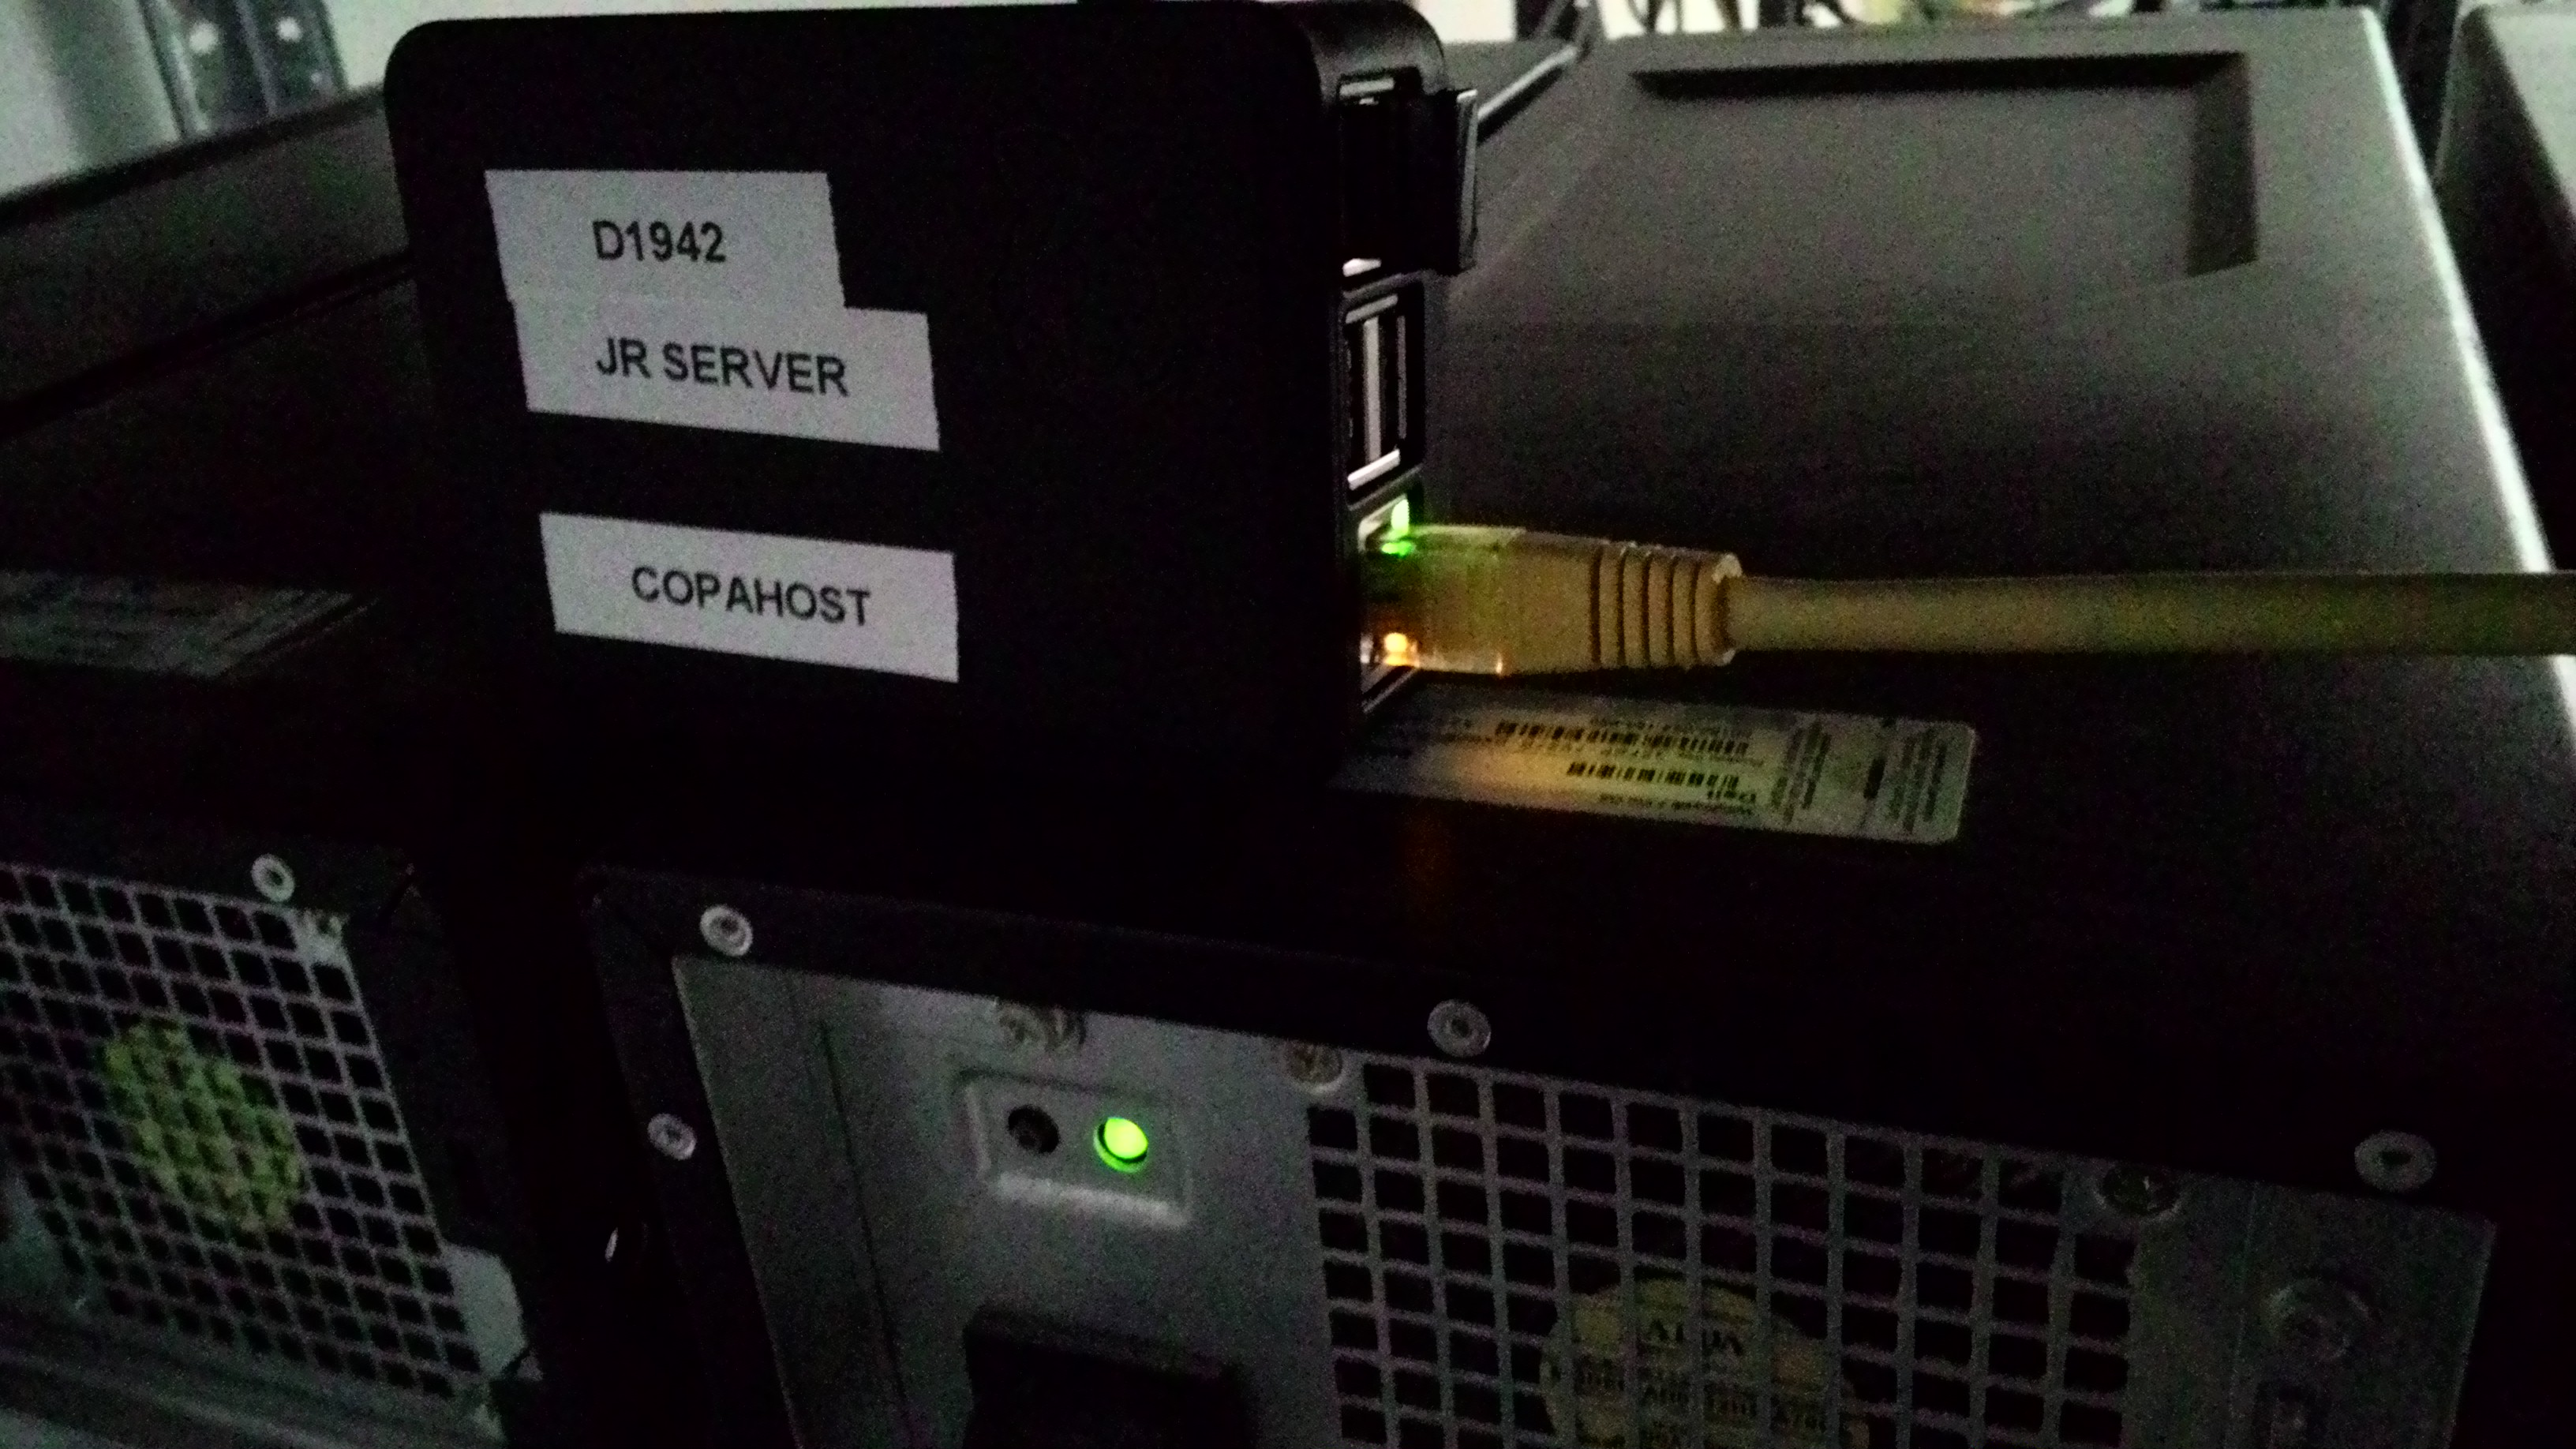 rasp dedicated server in datacenter img1